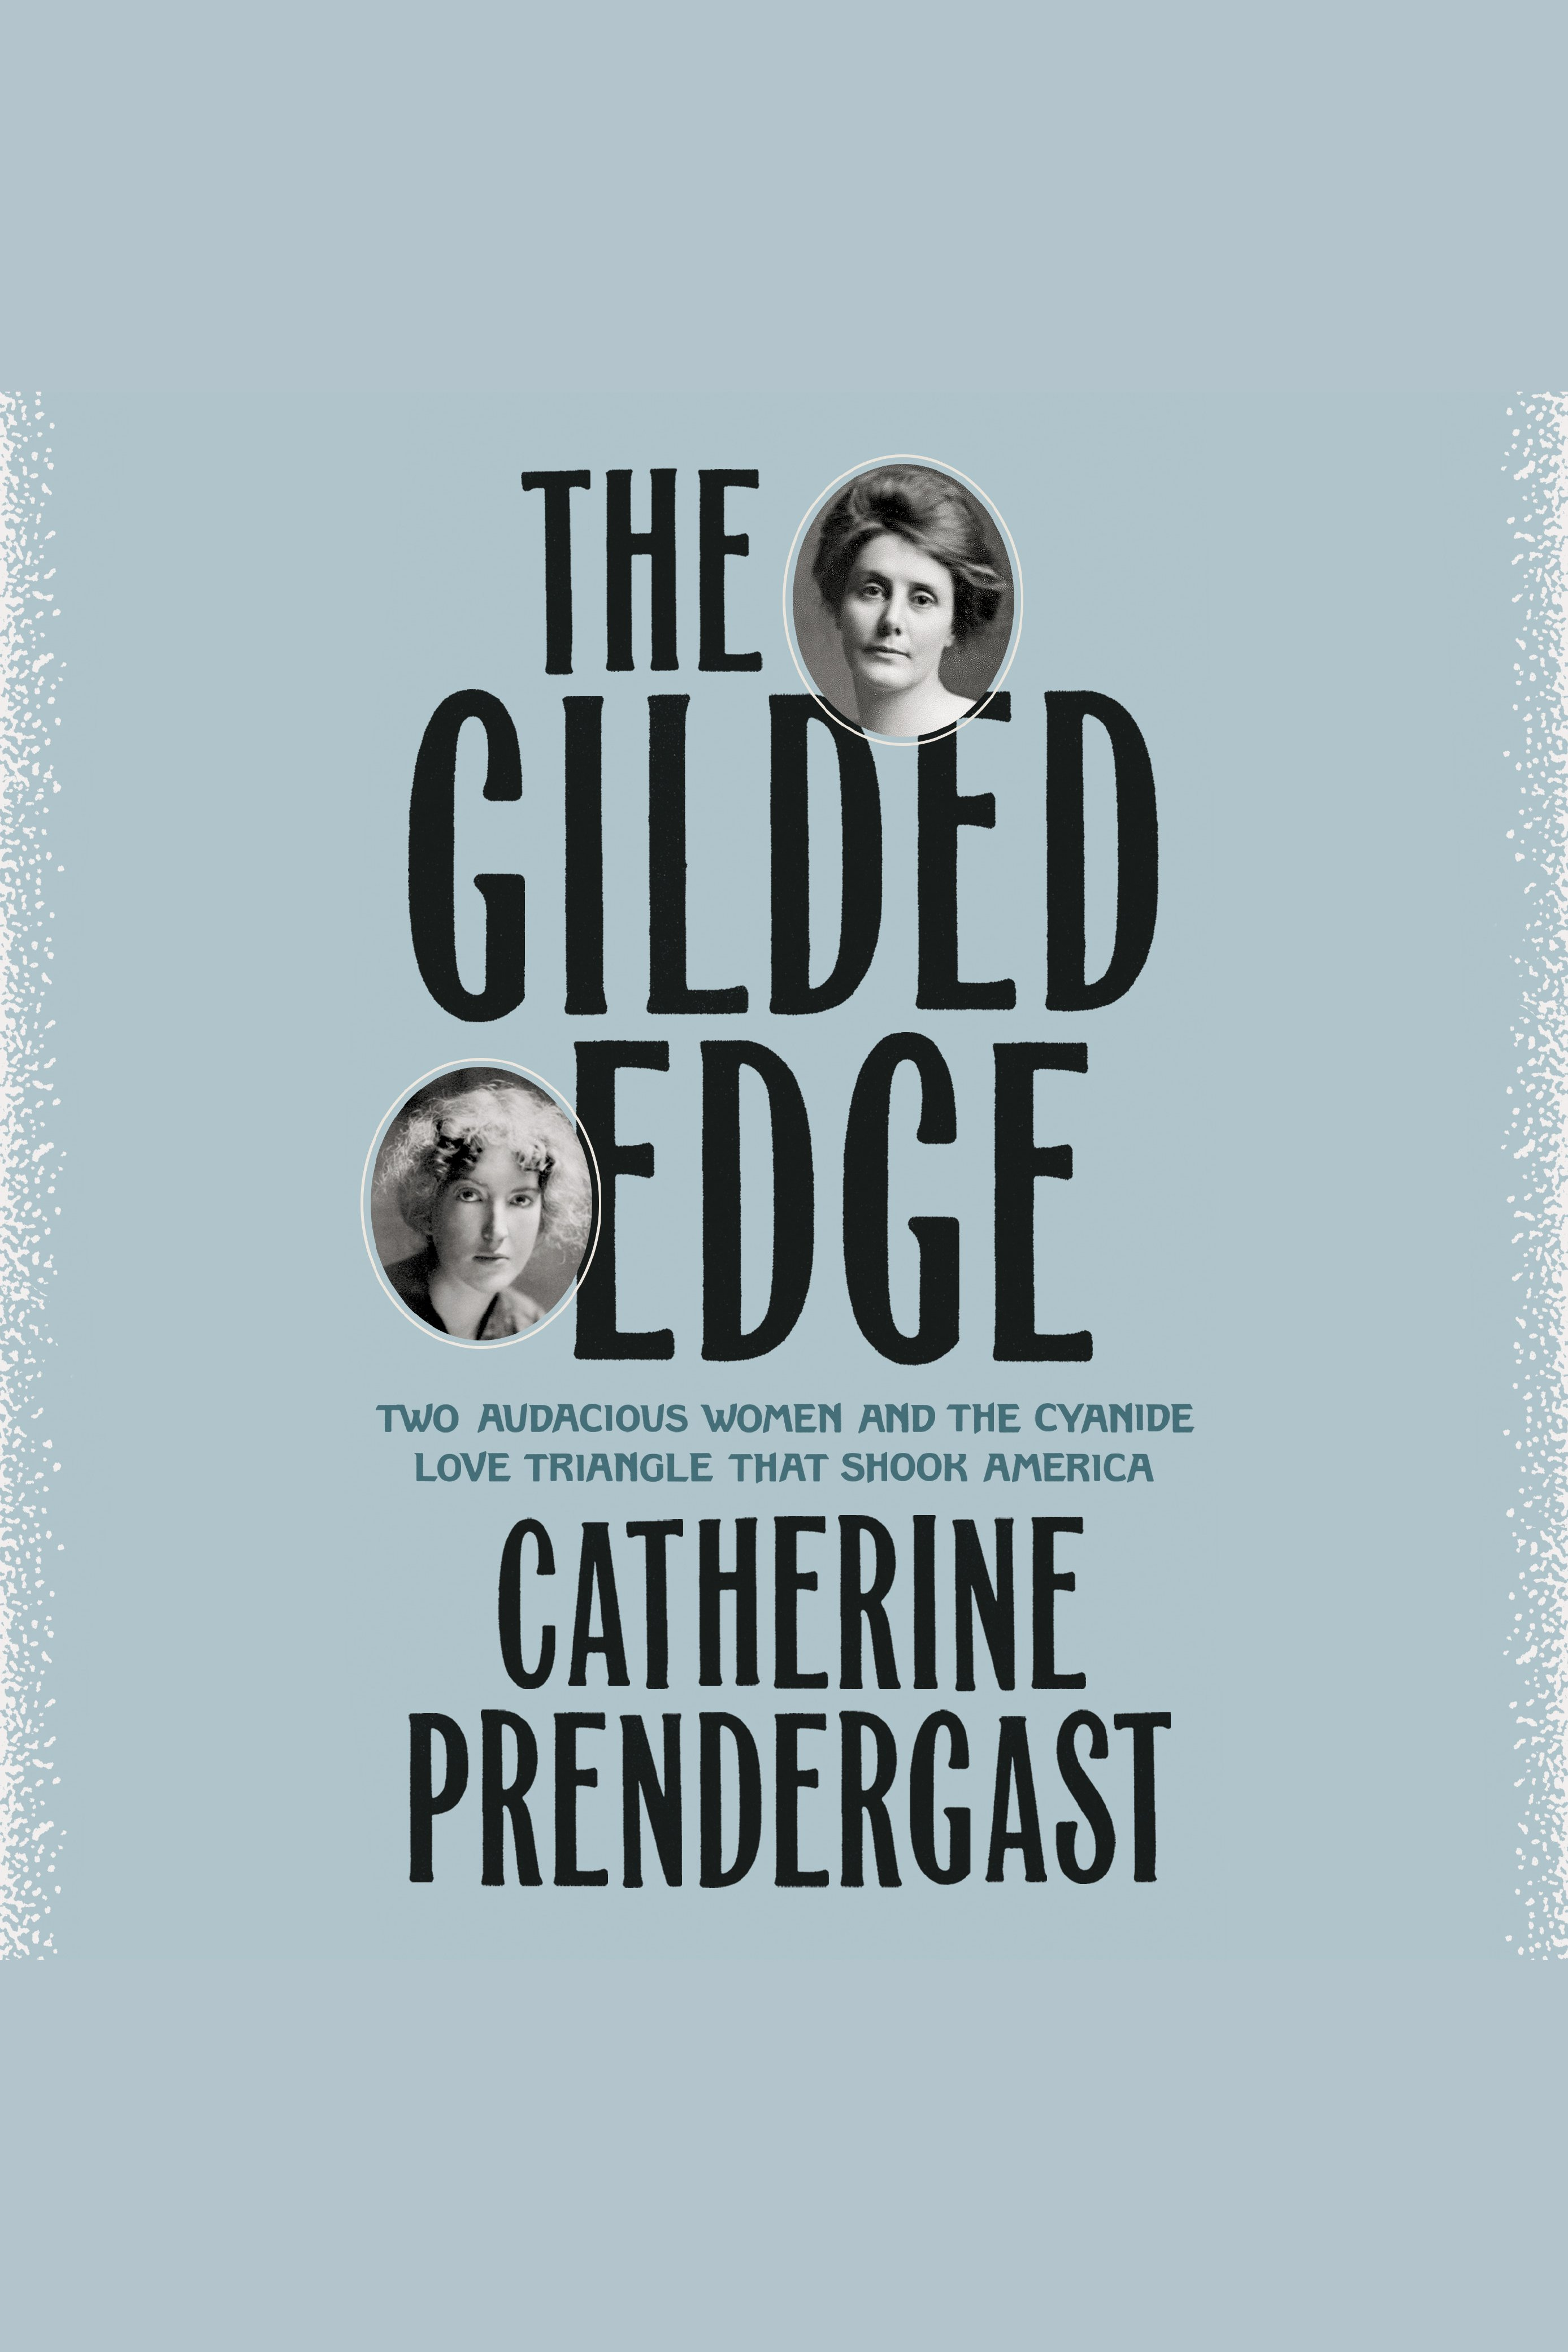 Gilded Edge, The Two Audacious Women and the Cyanide Love Triangle That Shook America